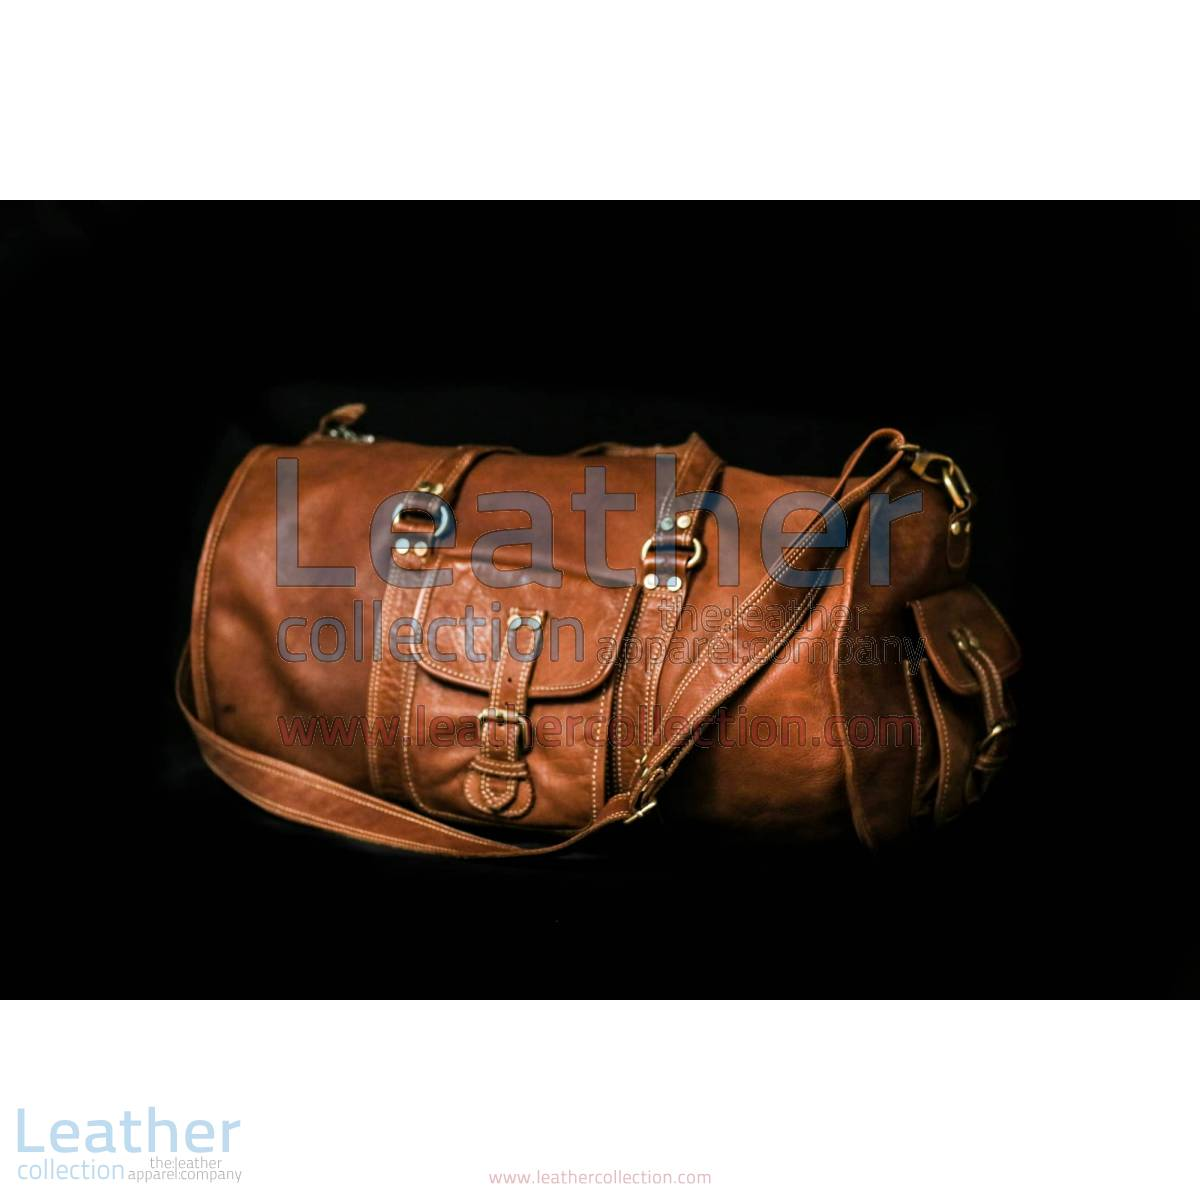 Leather Amore Bag | leather bag